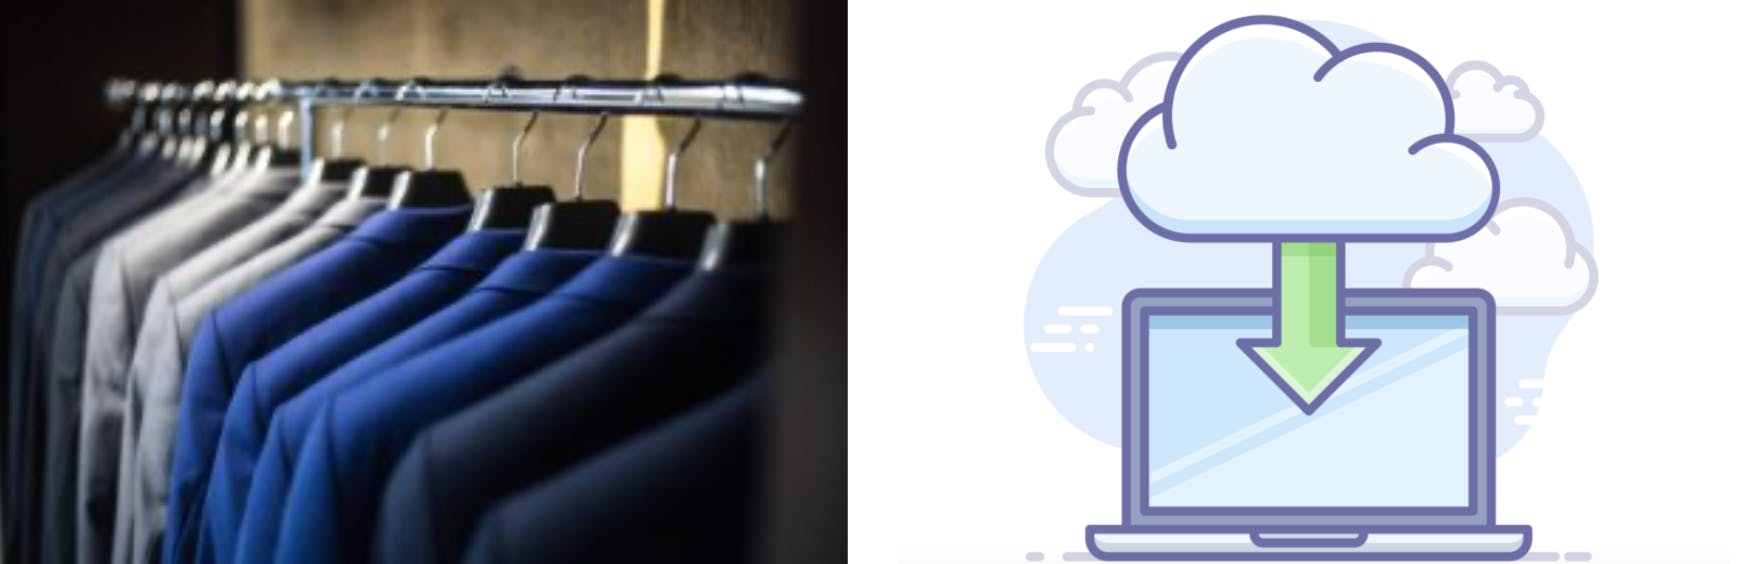 Comparing organized closet to online storage in the cloud.